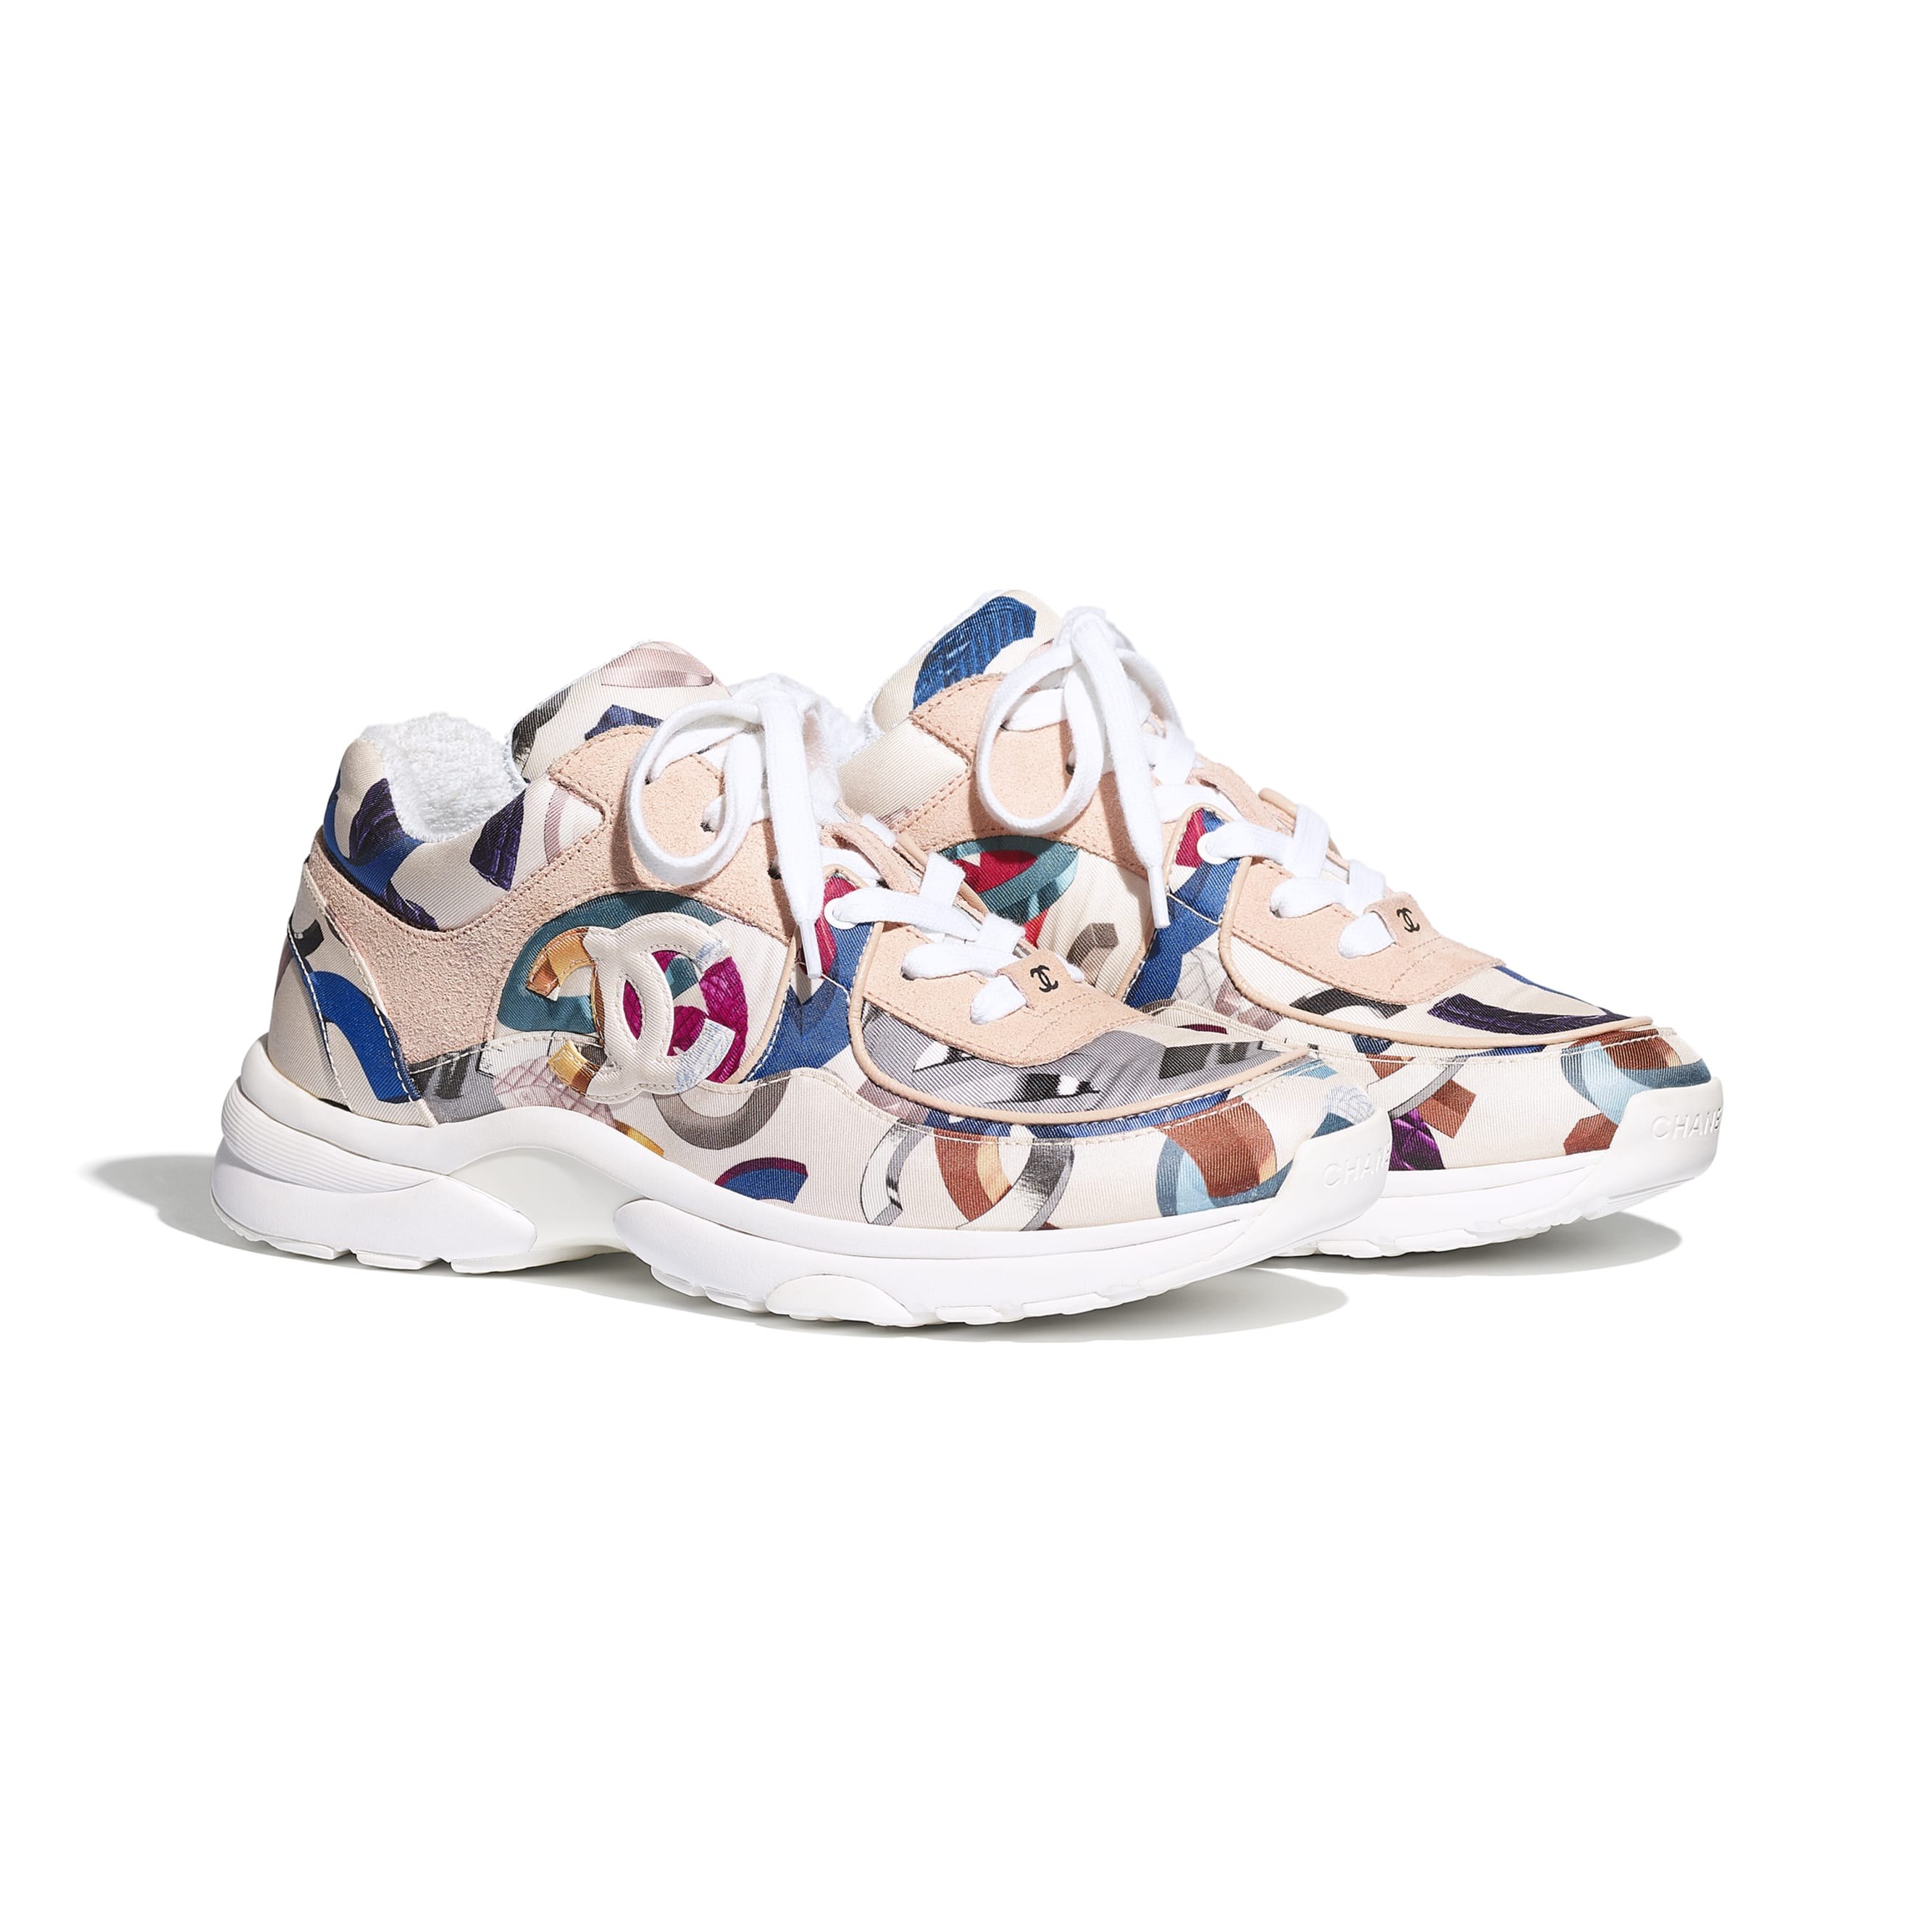 Sneakers - White & Multicolor - Printed Fabric & Suede Calfskin - CHANEL - Alternative view - see standard sized version